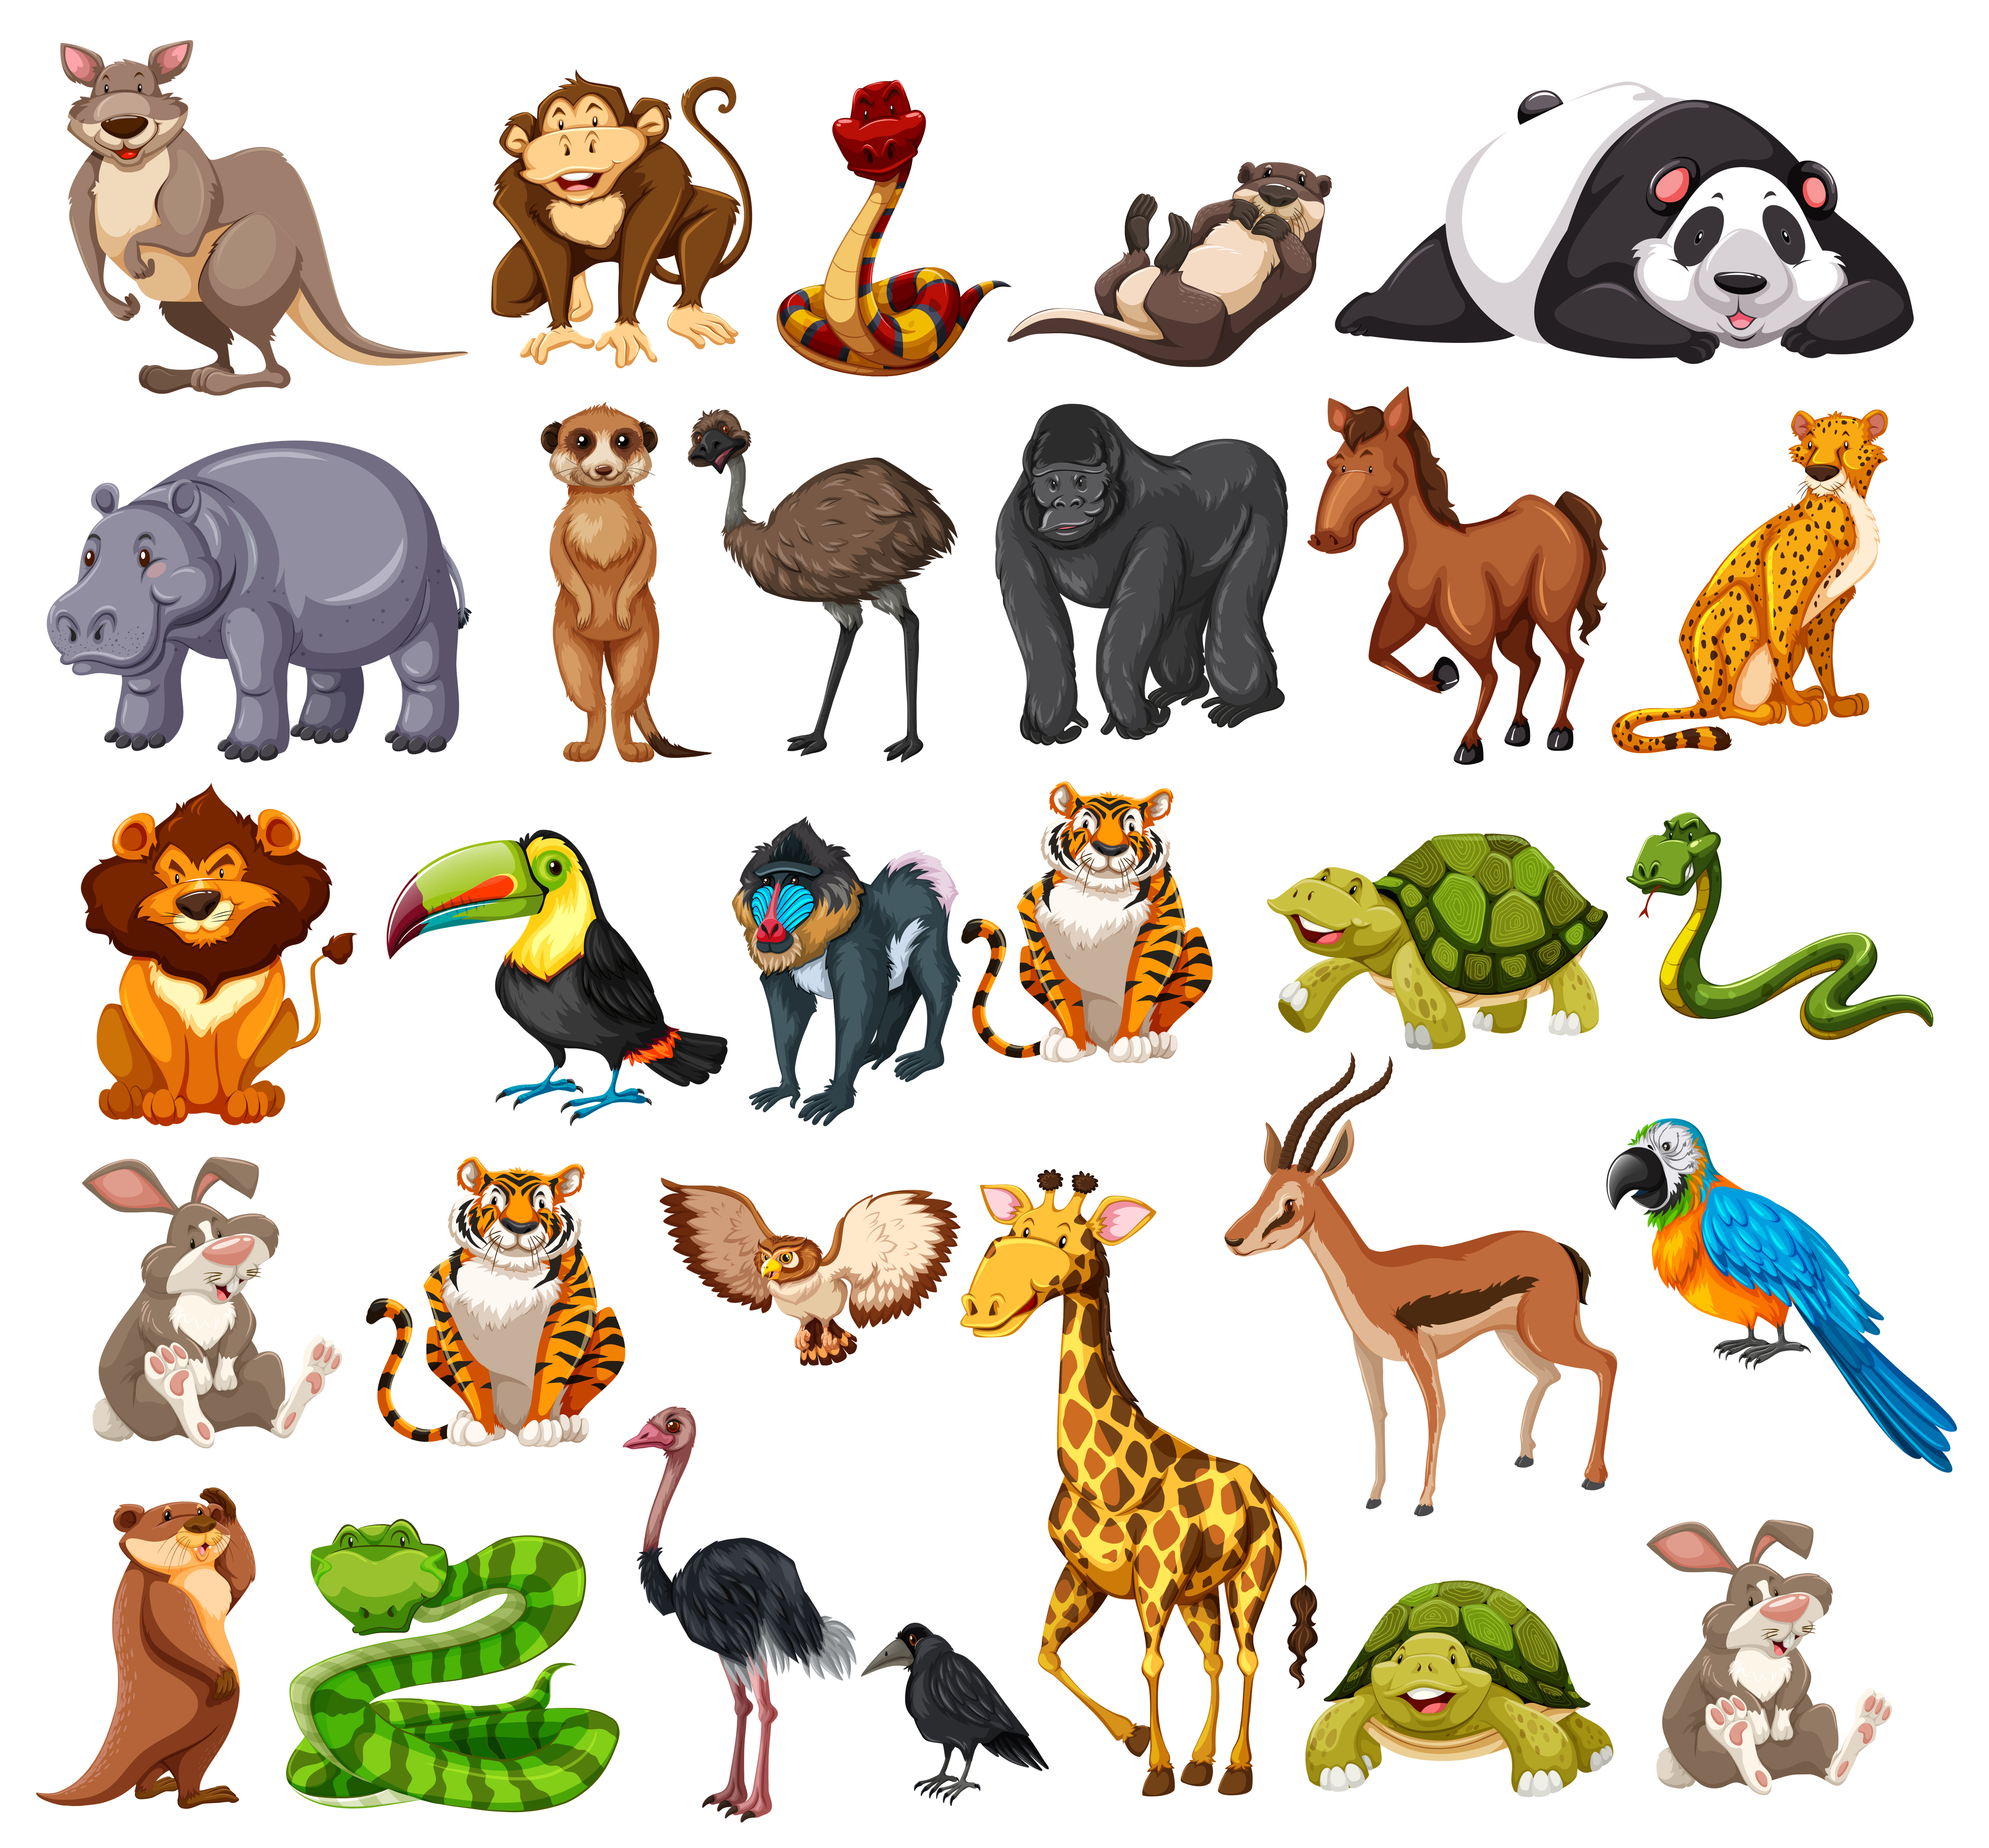 animals different types wild animal vector animales vectors premium cartoon illustration mammals type many monkey clipart dia giraffe african kinds